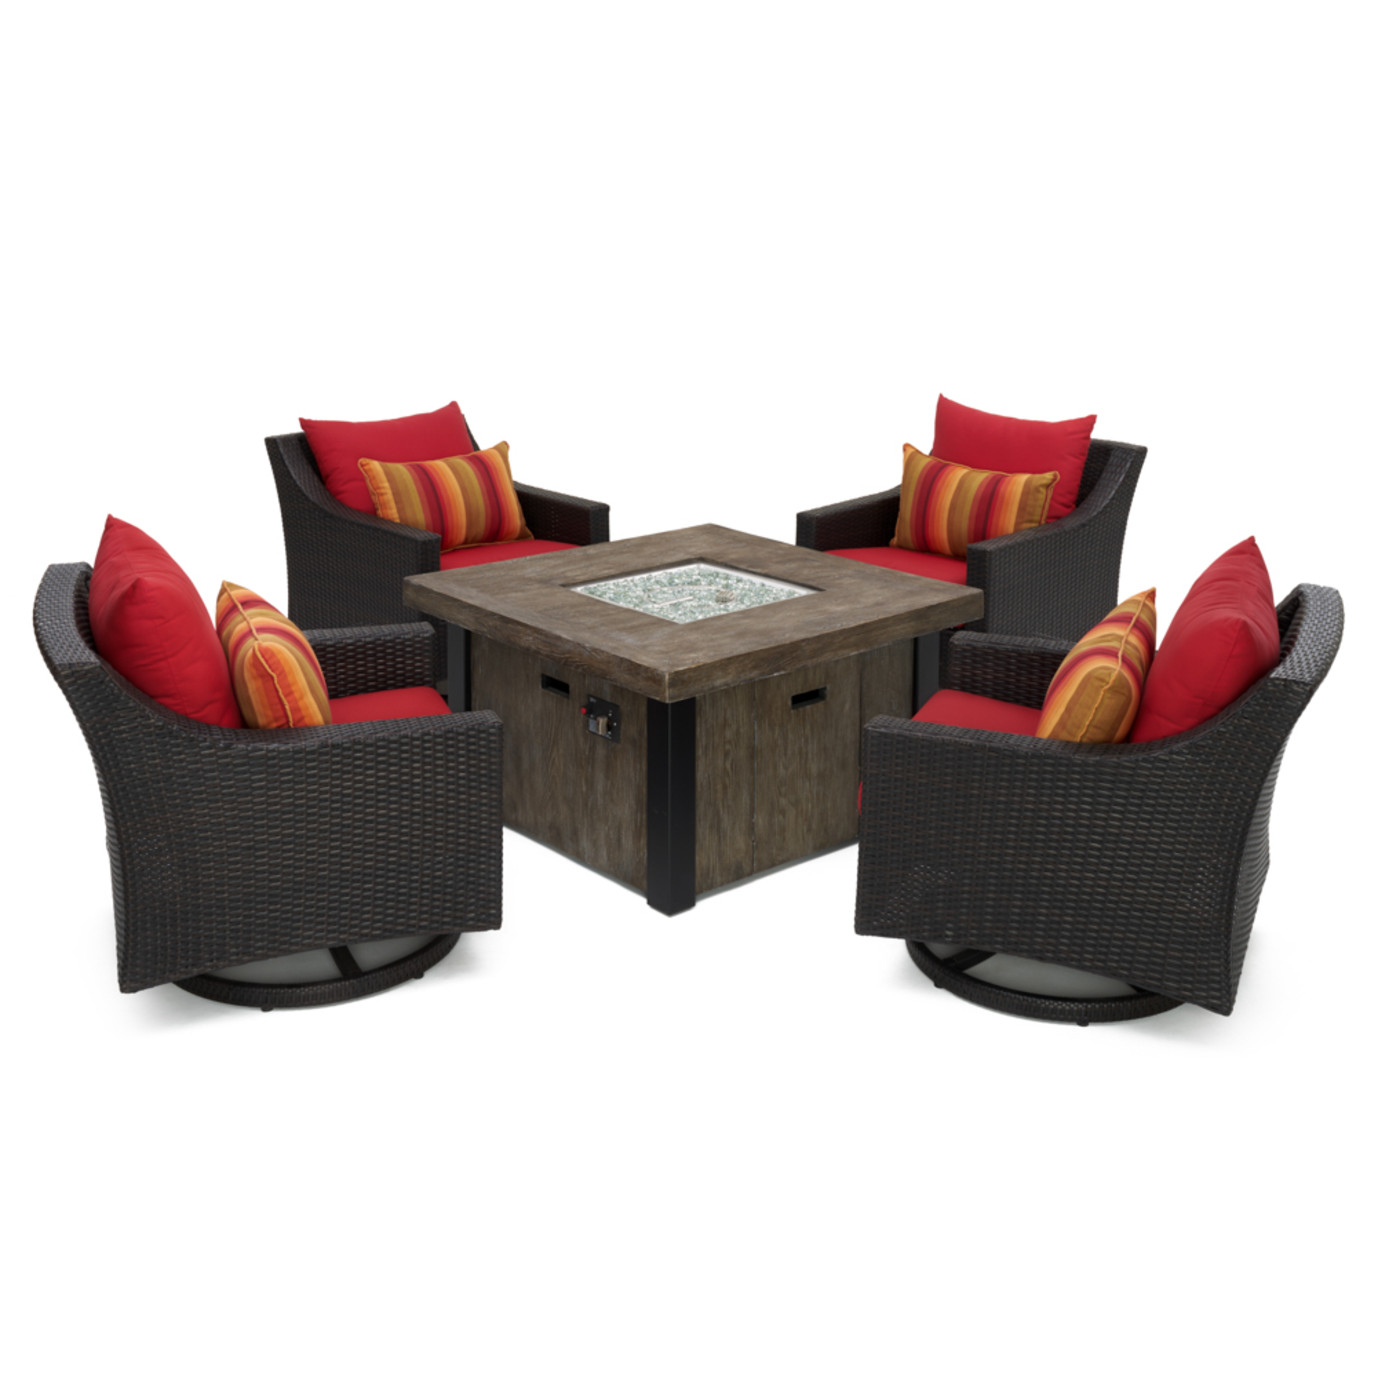 Deco™ 5pc Motion Fire Chat Set - Sunset Red